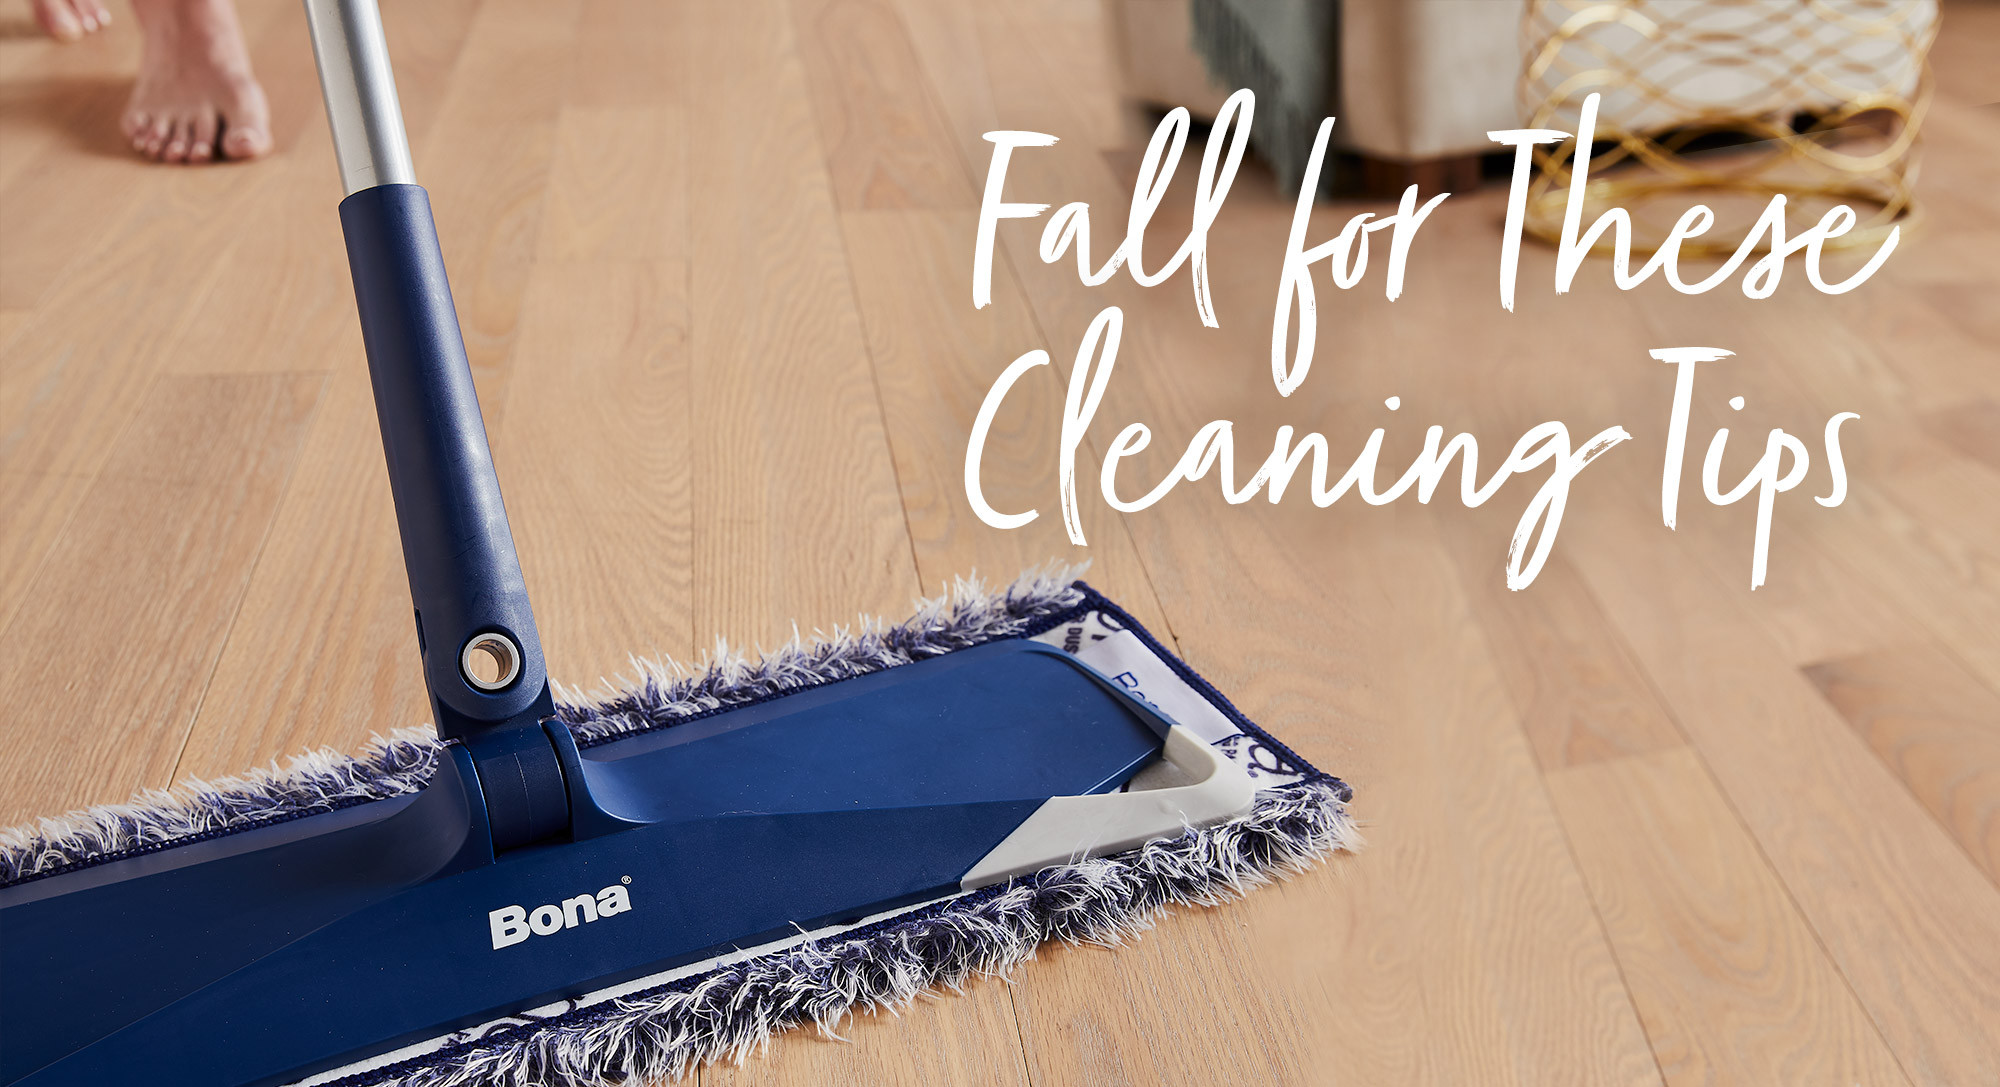 bona x hardwood floor cleaner reviews of home bona us with regard to fall feature2